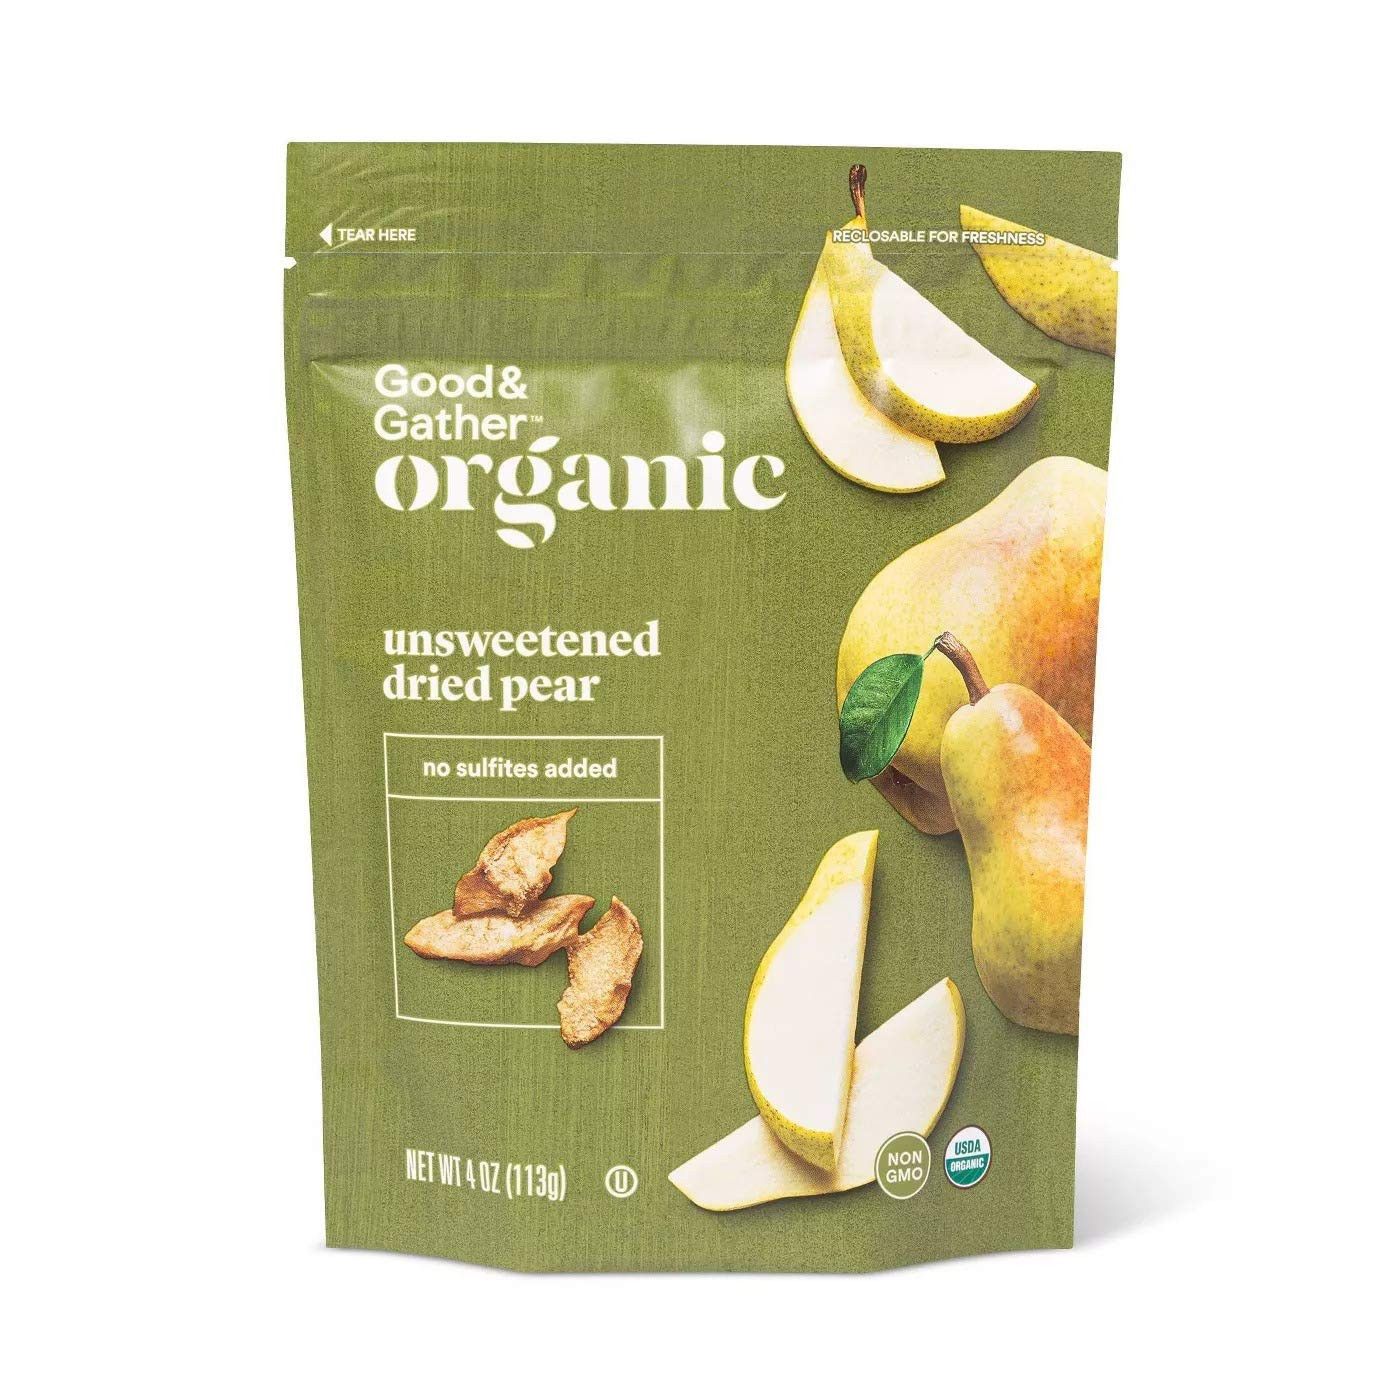 Good & Gather- Organic Dried Unsweetened Pear Snacks - 4oz by Target Stores